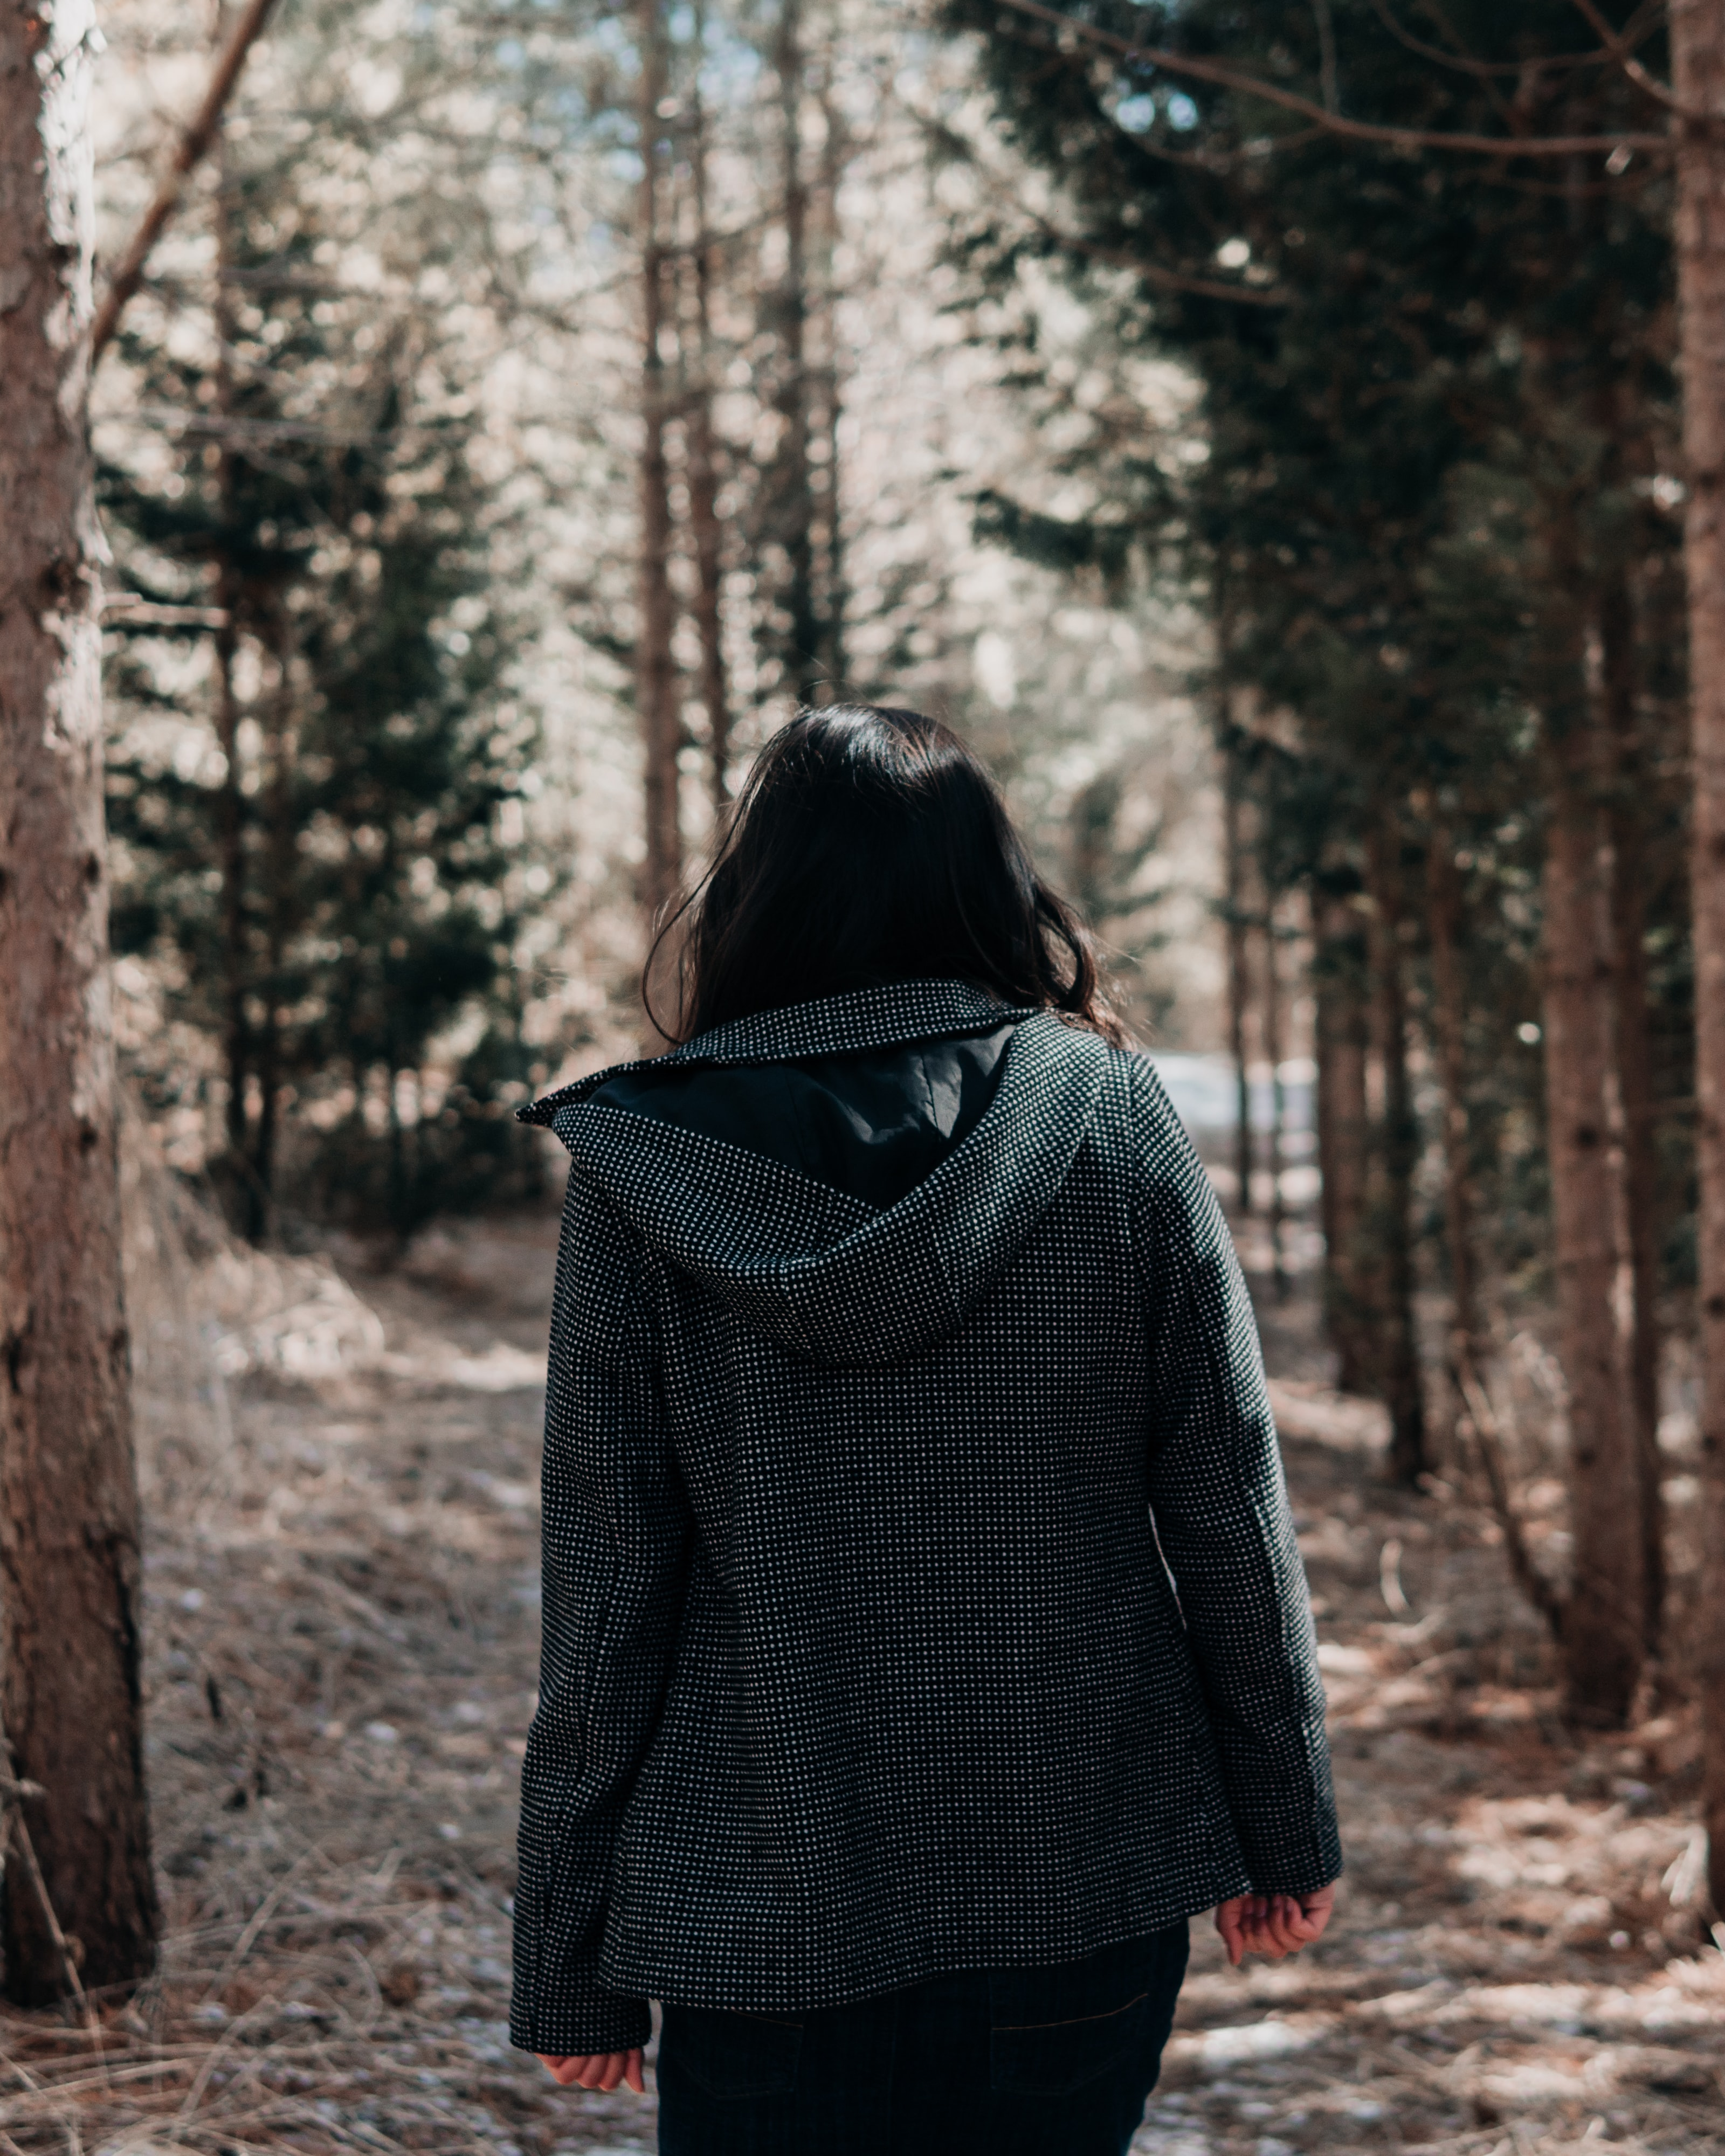 person walking on forest with pine trees